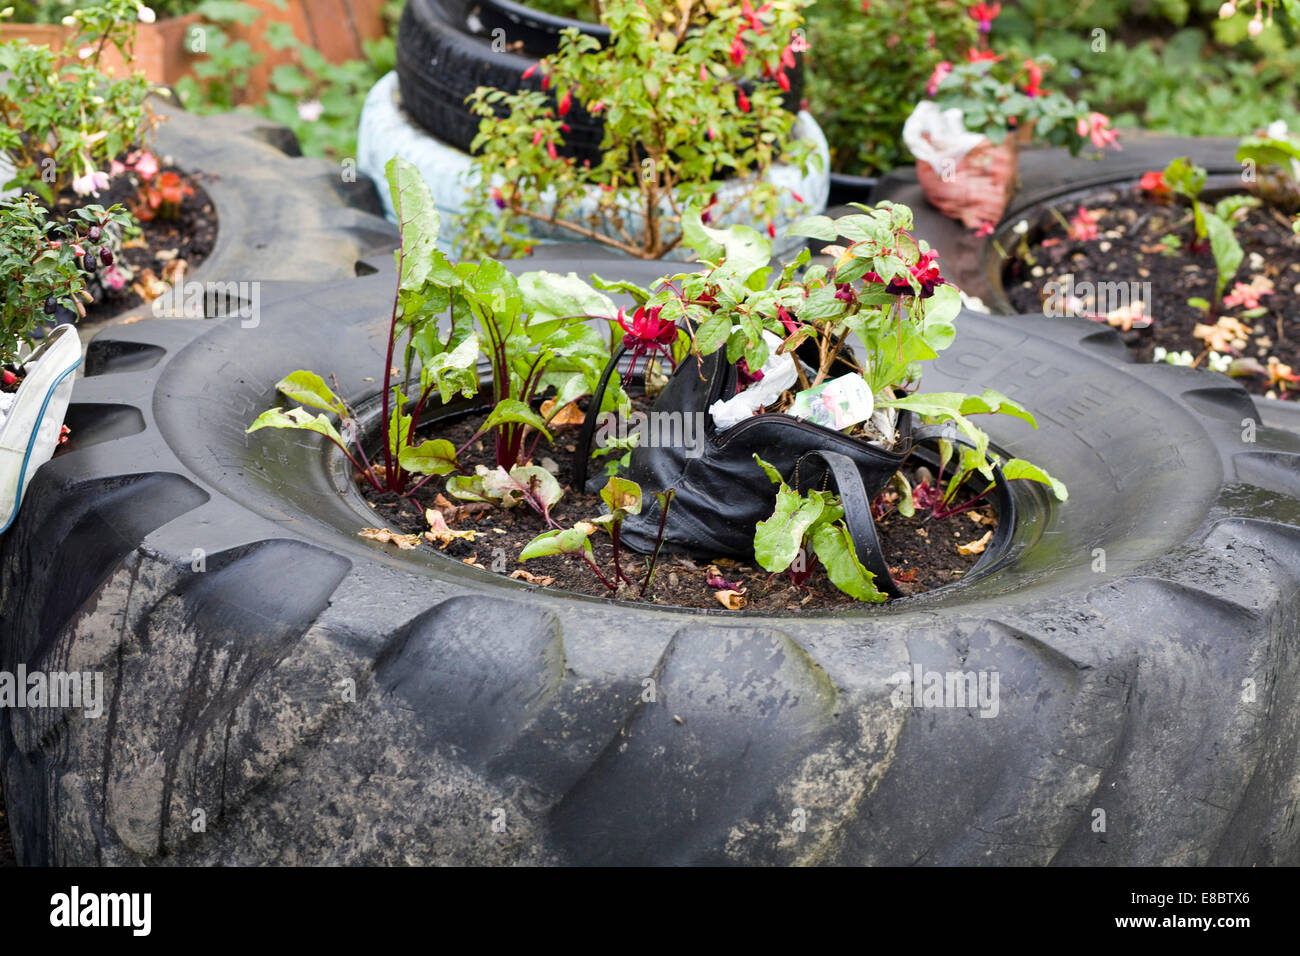 Tractor tire with Plants growing in the middle 'Inventive Gardens' - Stock Image